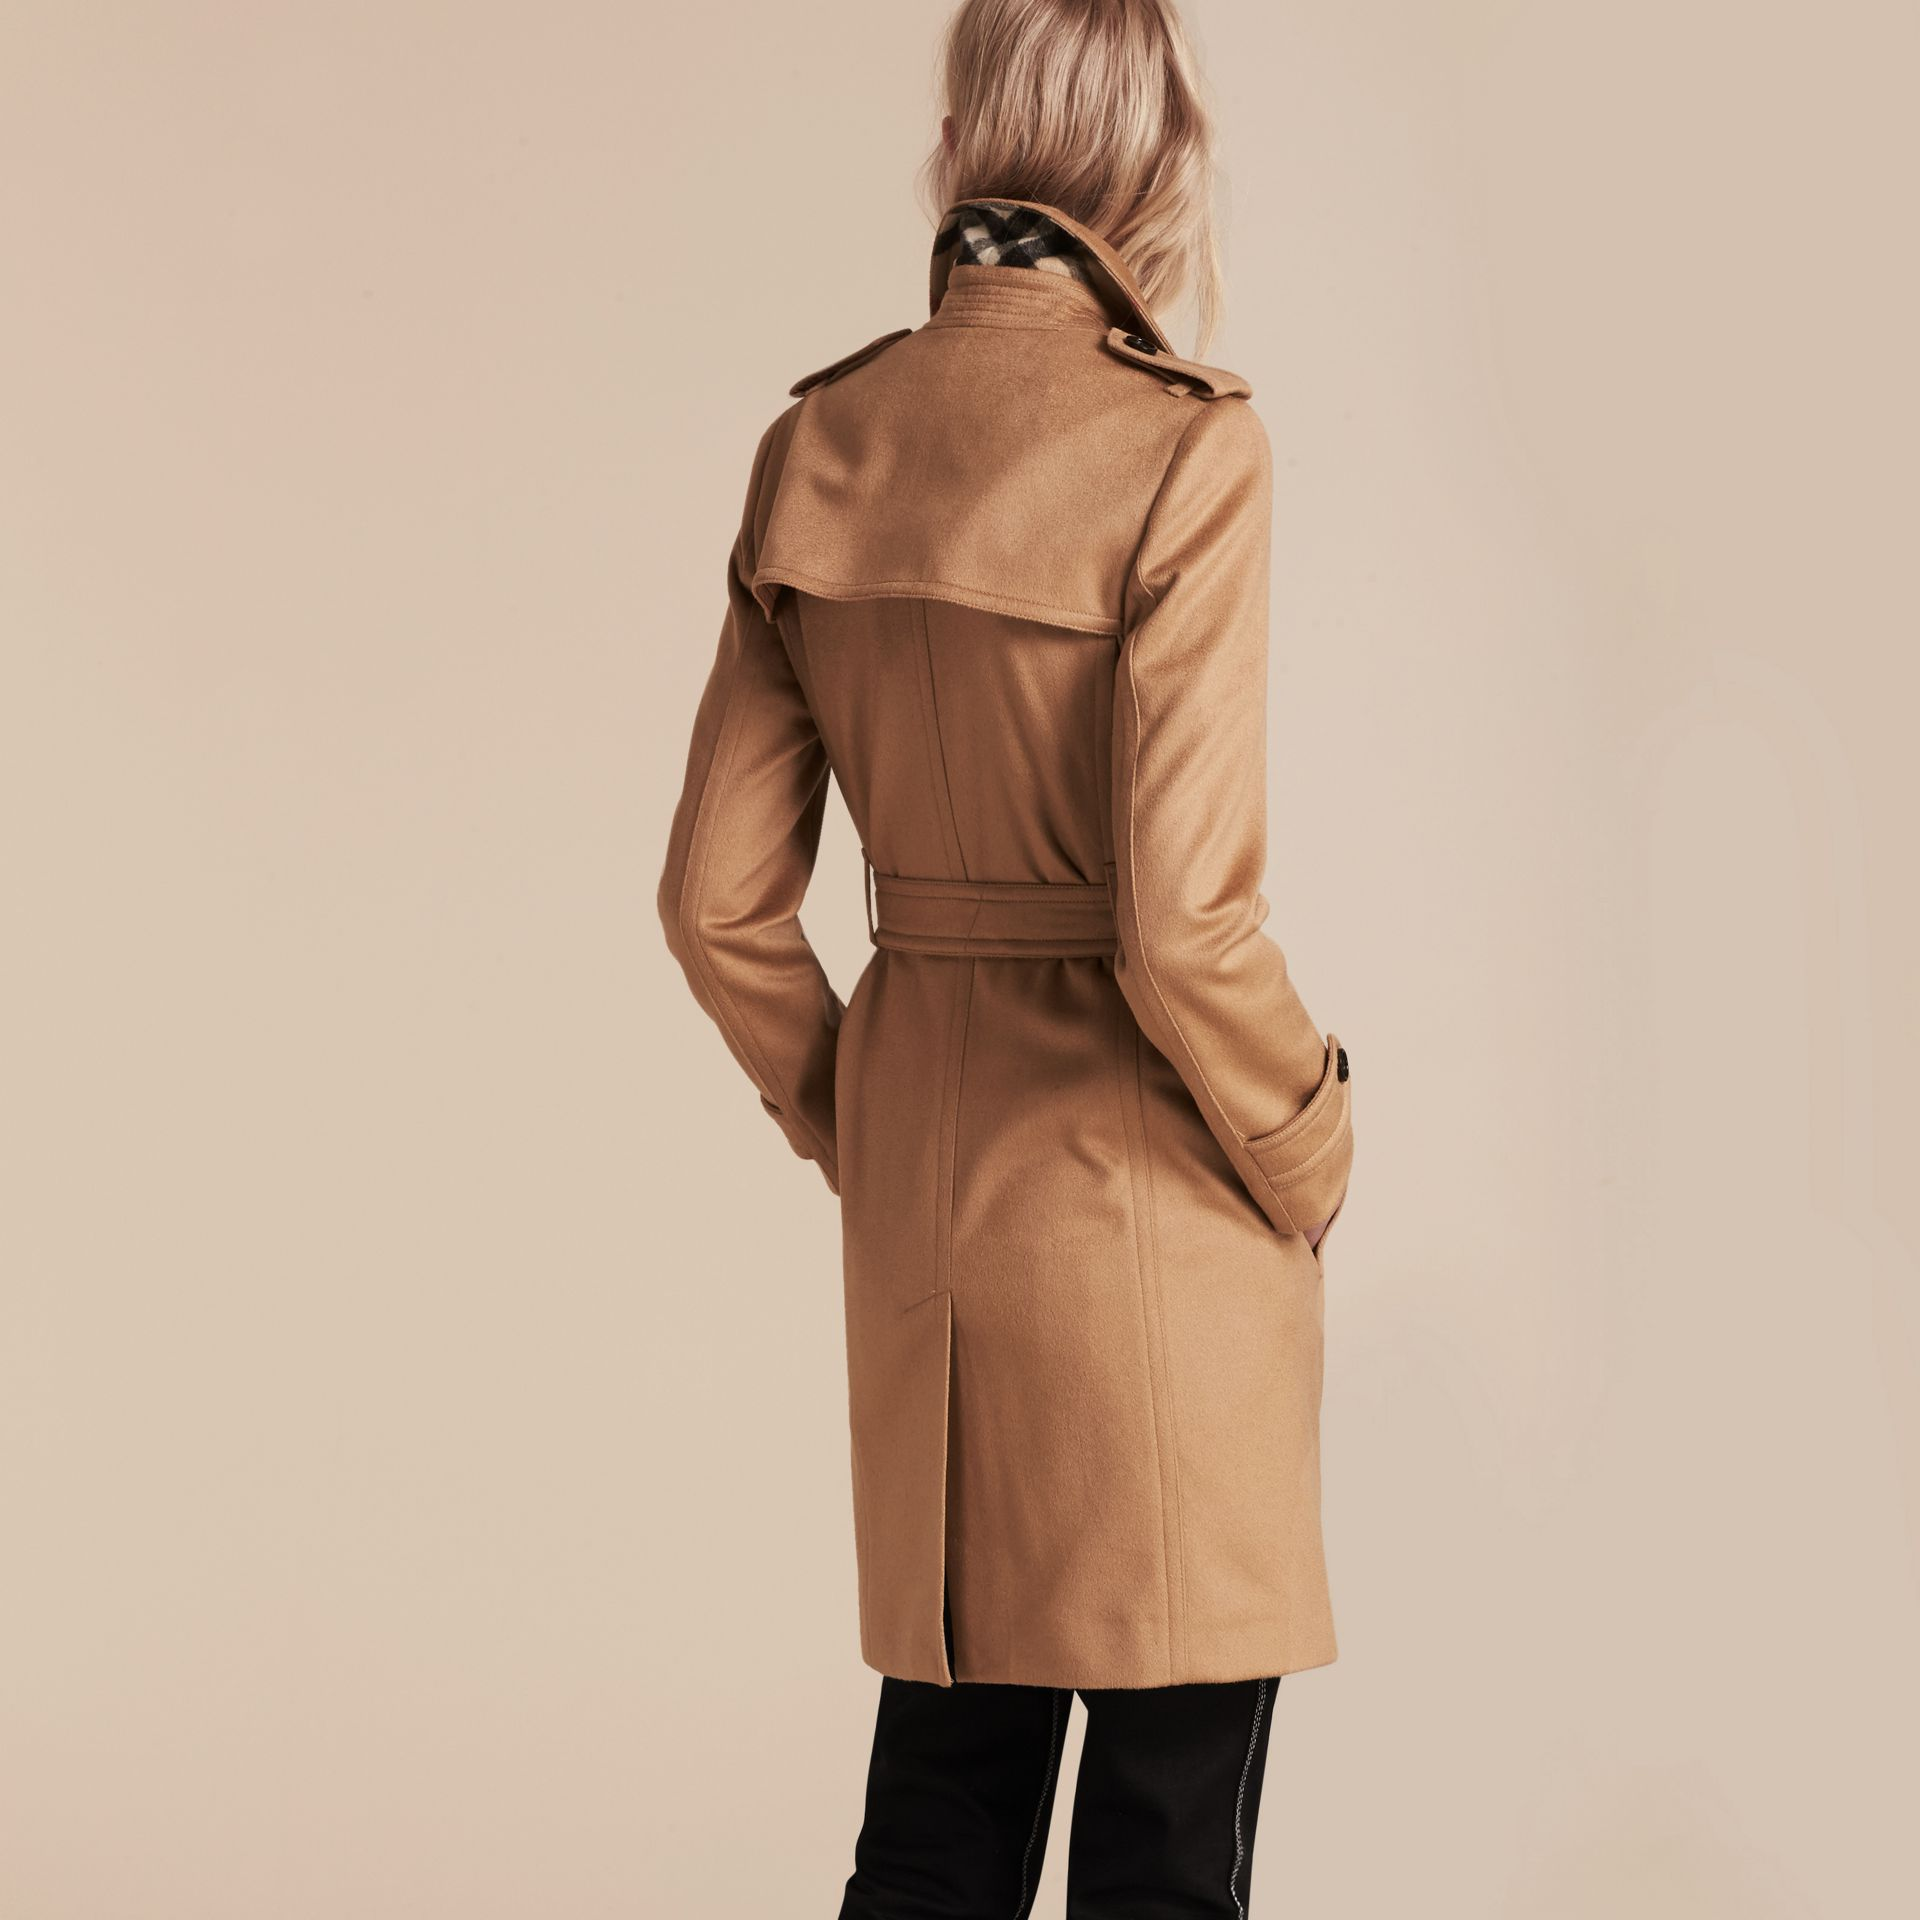 Camel Cashmere Wrap Trench Coat Camel - gallery image 3